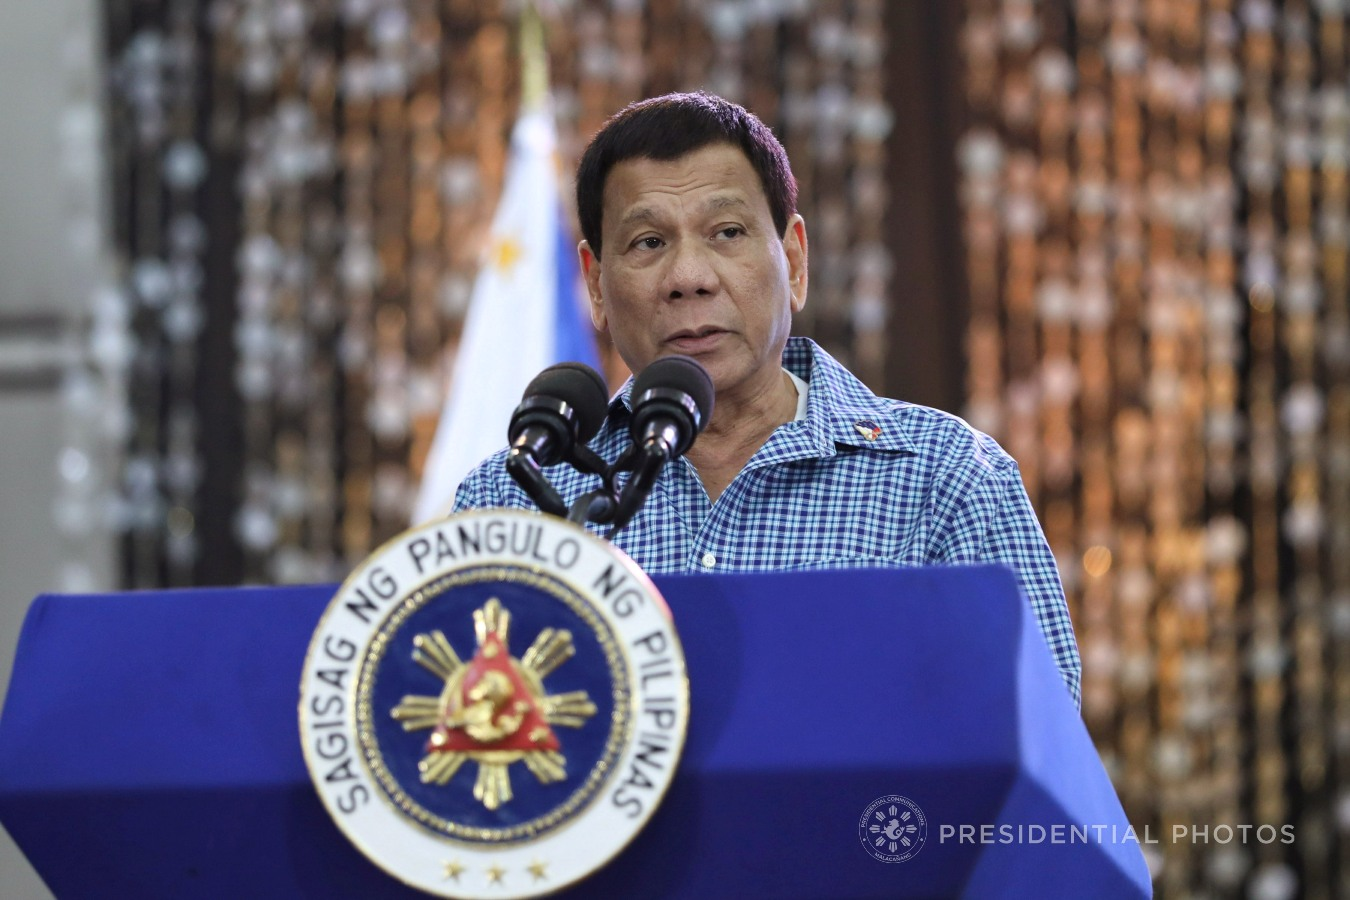 President Rodrigo Roa Duterte, in his speech during the Partido Demokratiko Pilipino (PDP) - Laban Christmas benefit dinner for Marawi City at the Sofitel Philippine Plaza in Pasay City on December 13, 2017, reassures that he is continuing his efforts to fulfill his campaign promises of eliminating illegal drugs, corruption and crime. ROBINSON NIÑAL JR./PRESIDENTIAL PHOTO